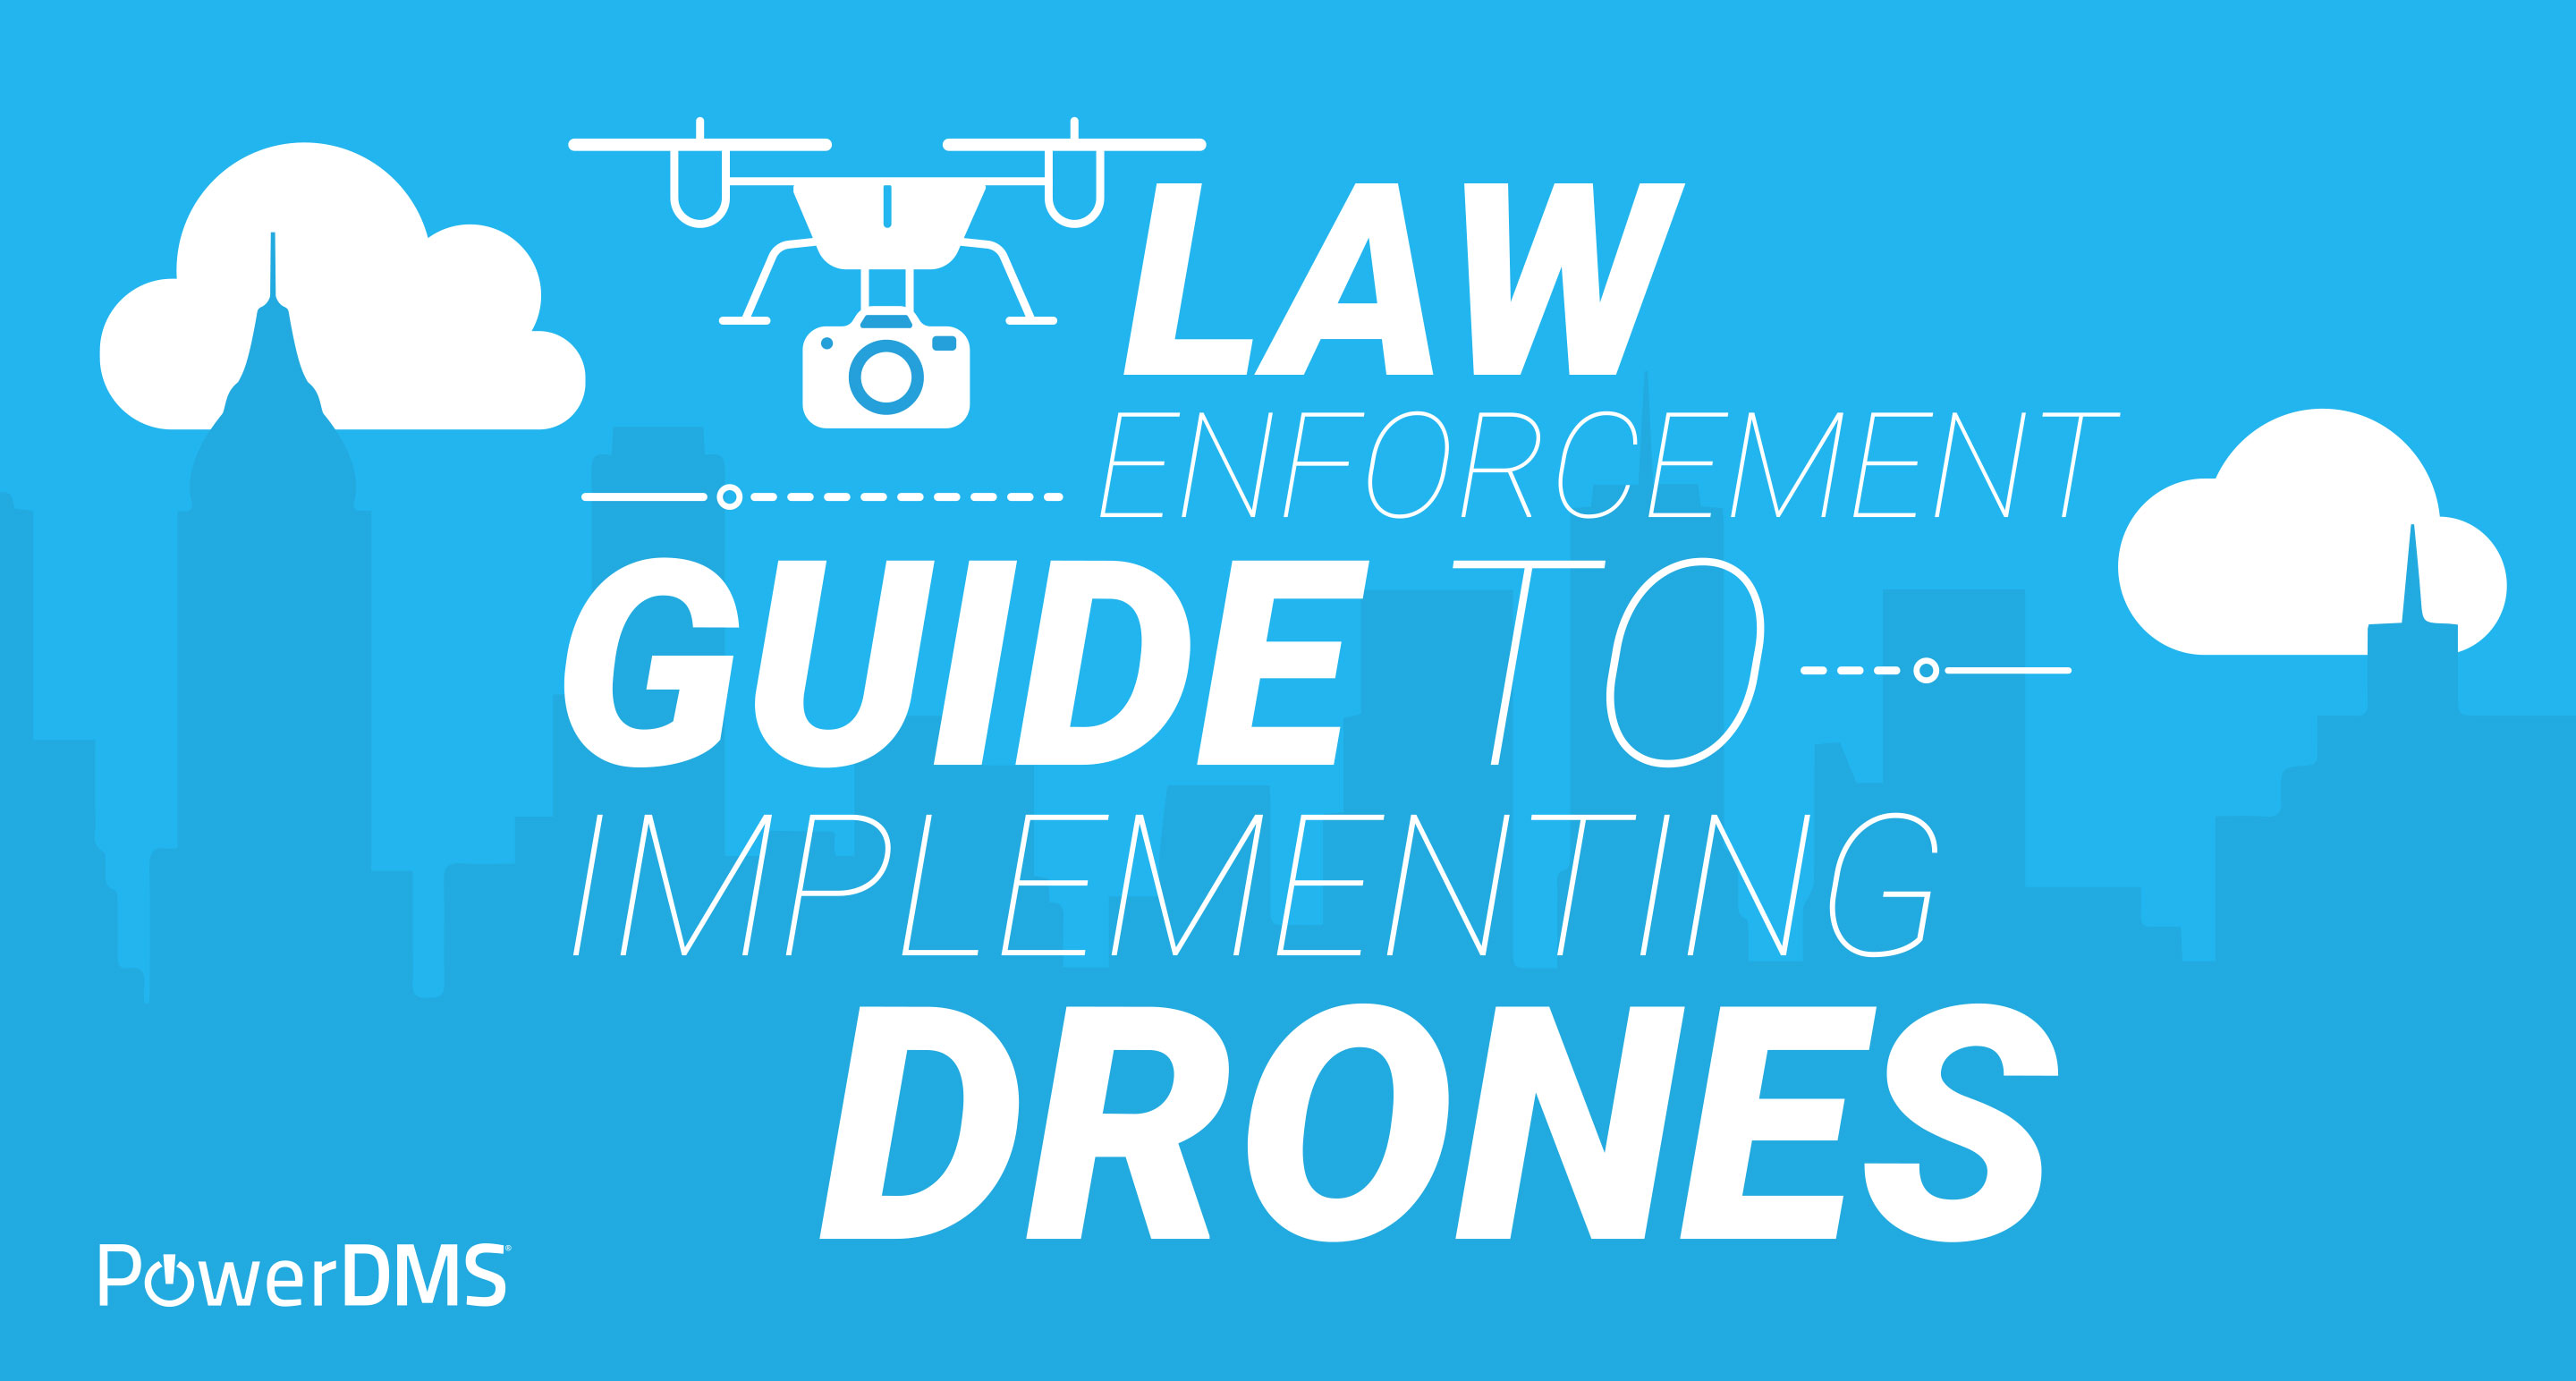 law-enforcement-guide-to-implementing-drones-social-image